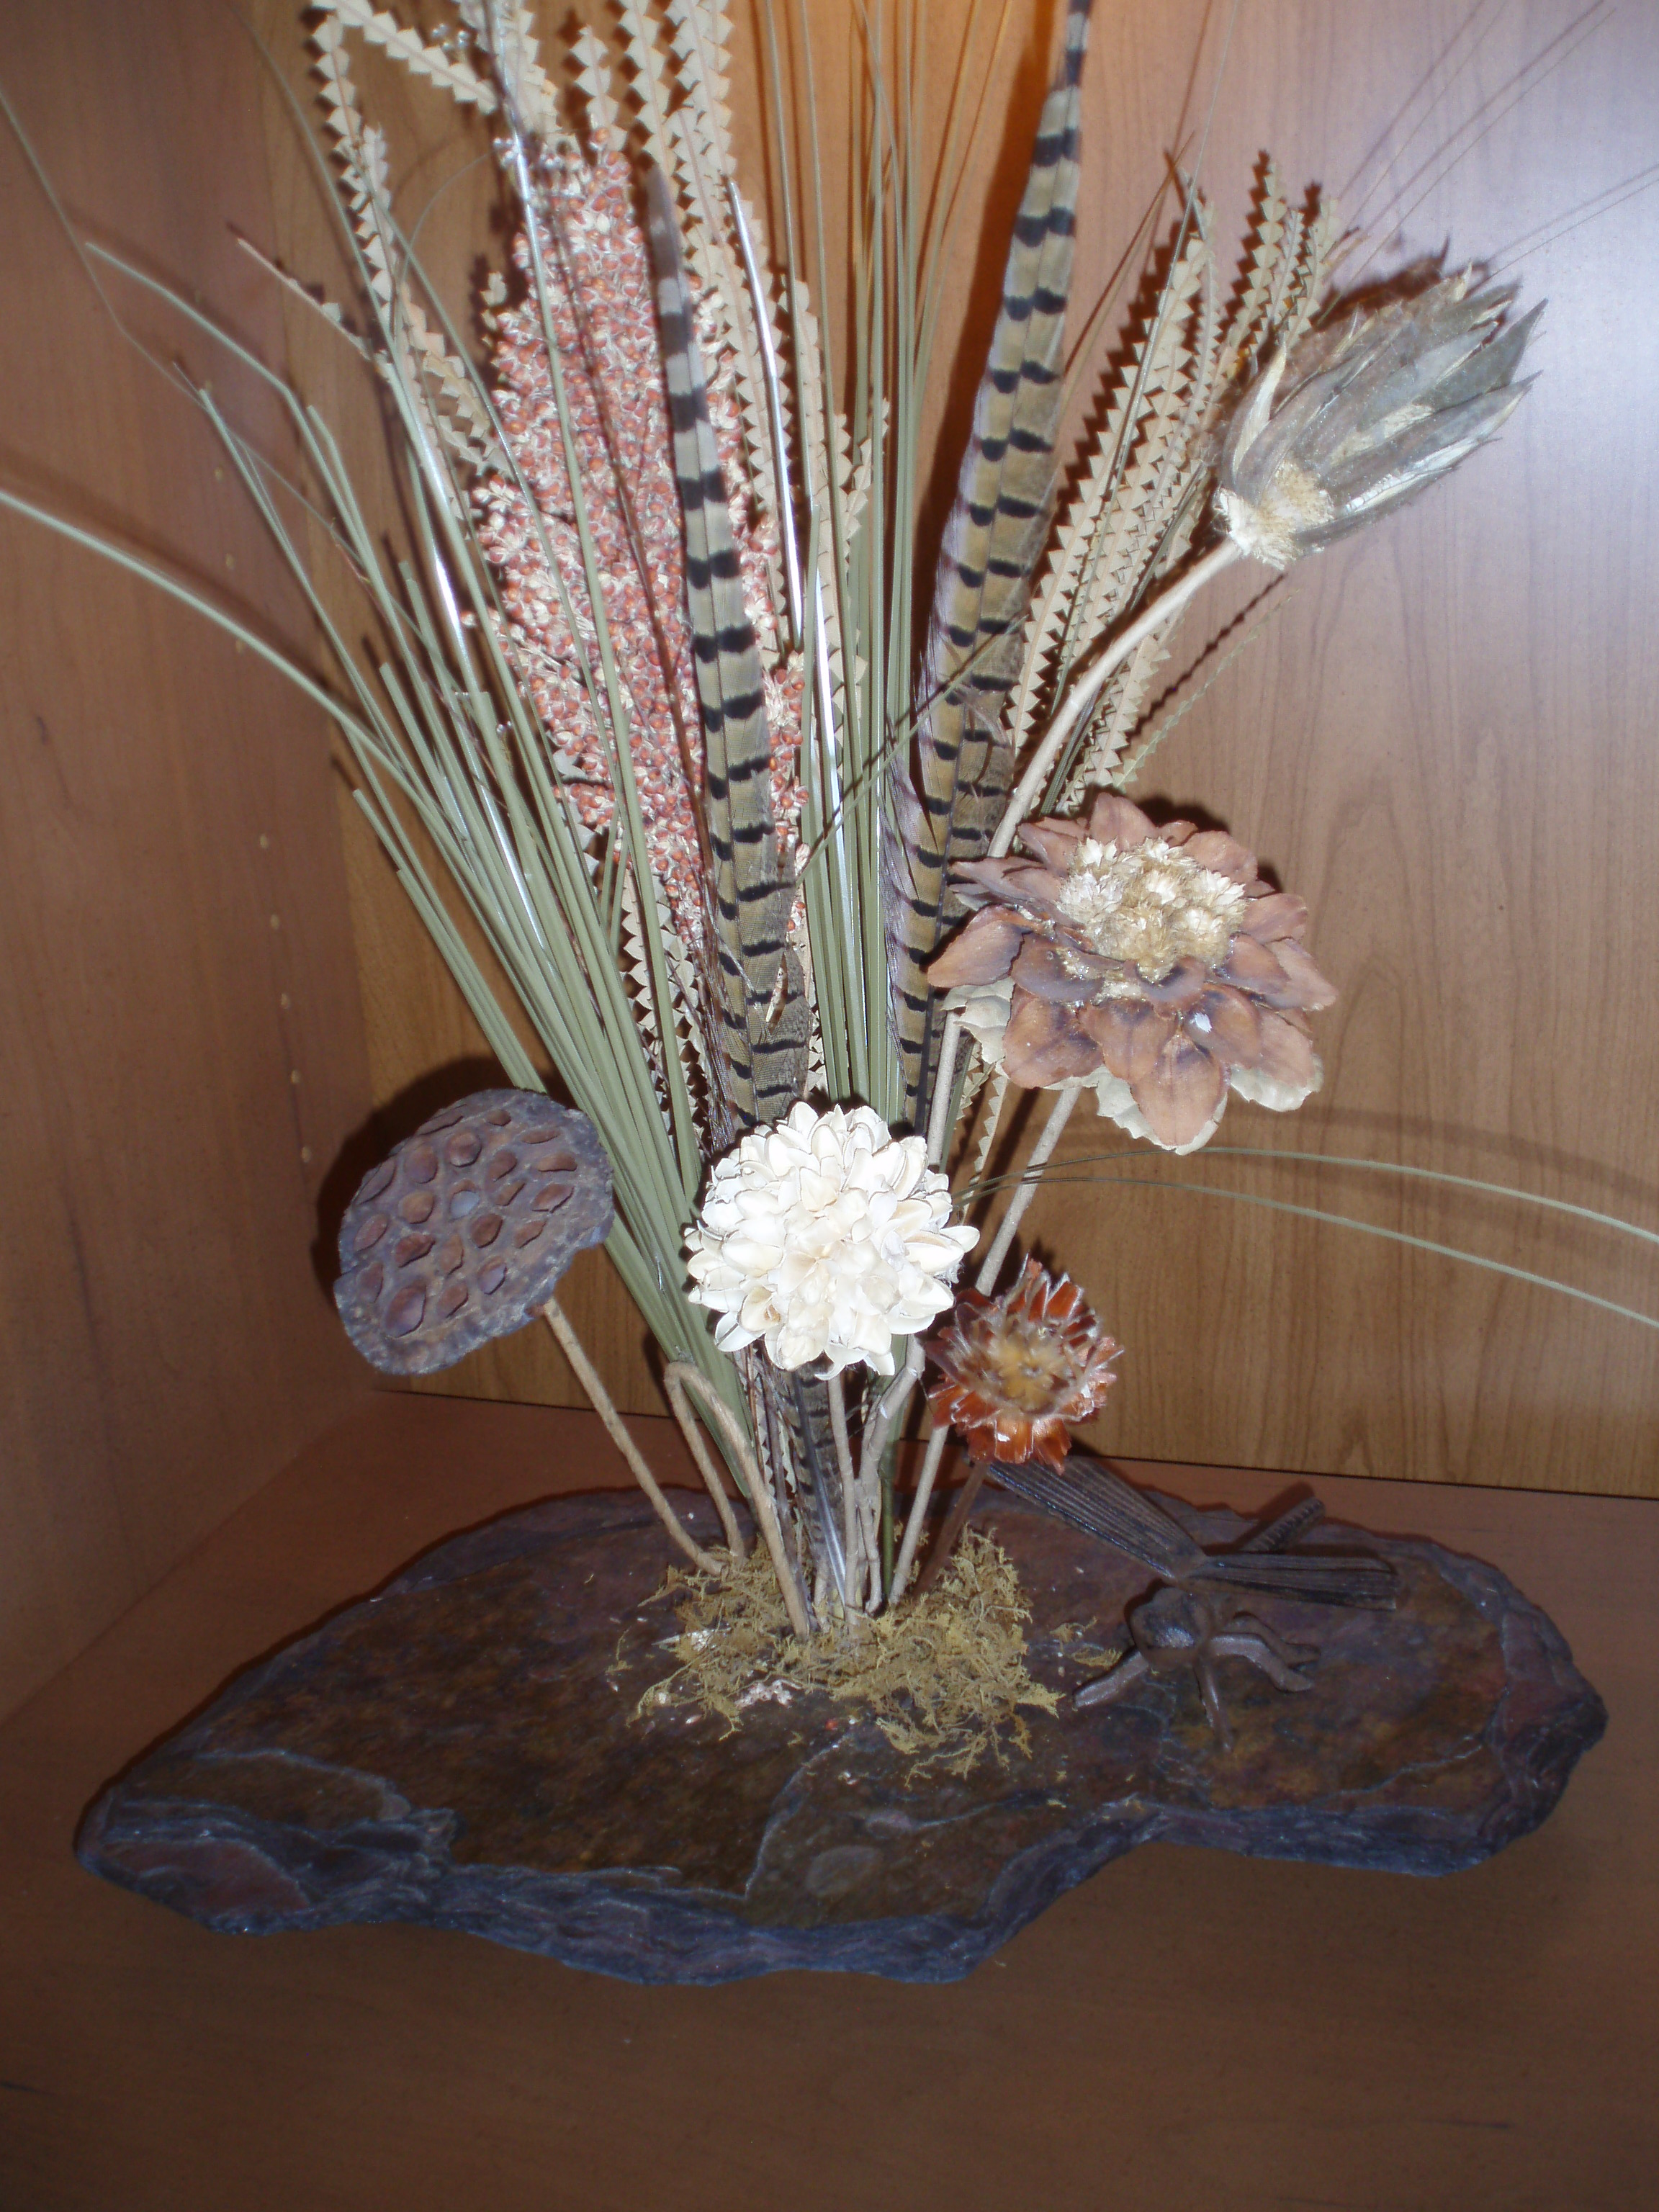 Large Natural Rock Ikebana Flower Vase - as seen on QVC